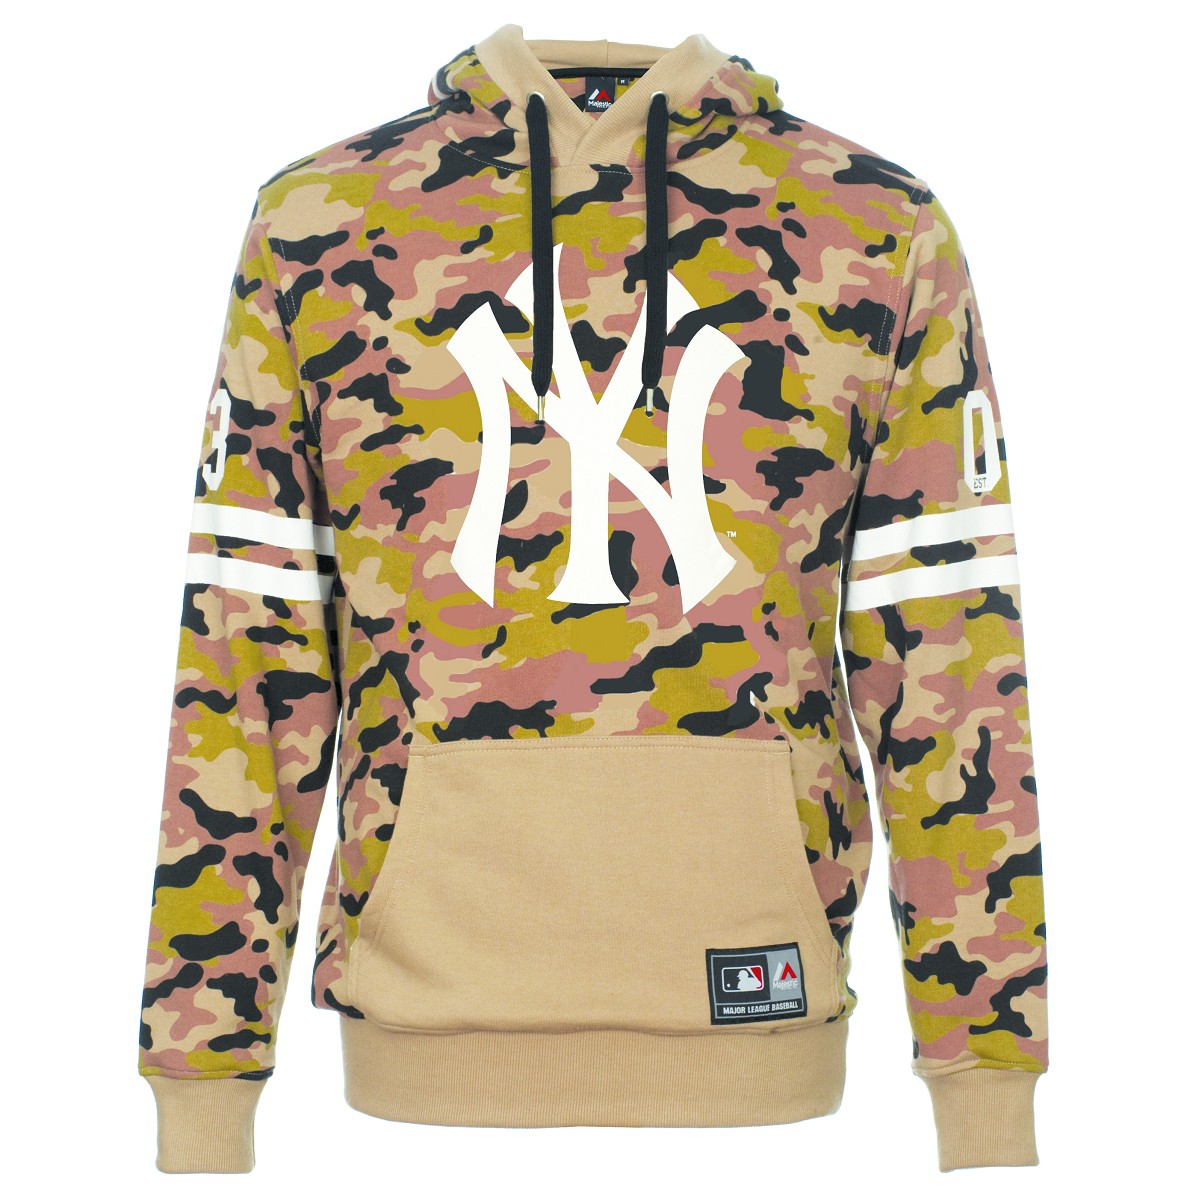 FELPA MAJESTIC BUCKLEY CAMO NEW YORK YANKEES FELPE BASEBALL MLB ... 31a1854c7b45